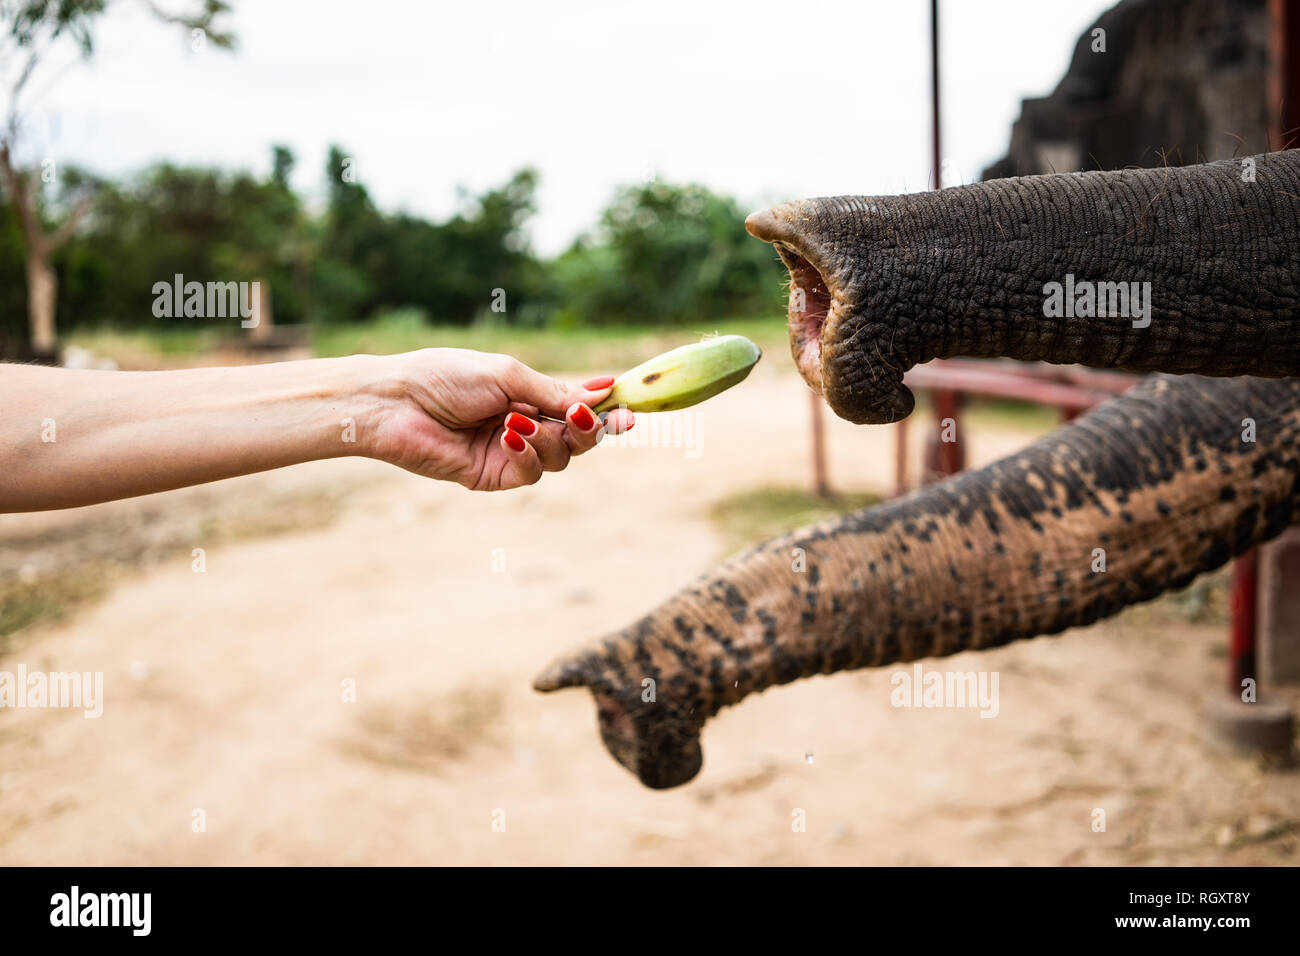 Hand with banana feeding to elephant.The hand of people are feed the banana to the elephant trunk in park of the zoo. the sharing and love. - Stock Image